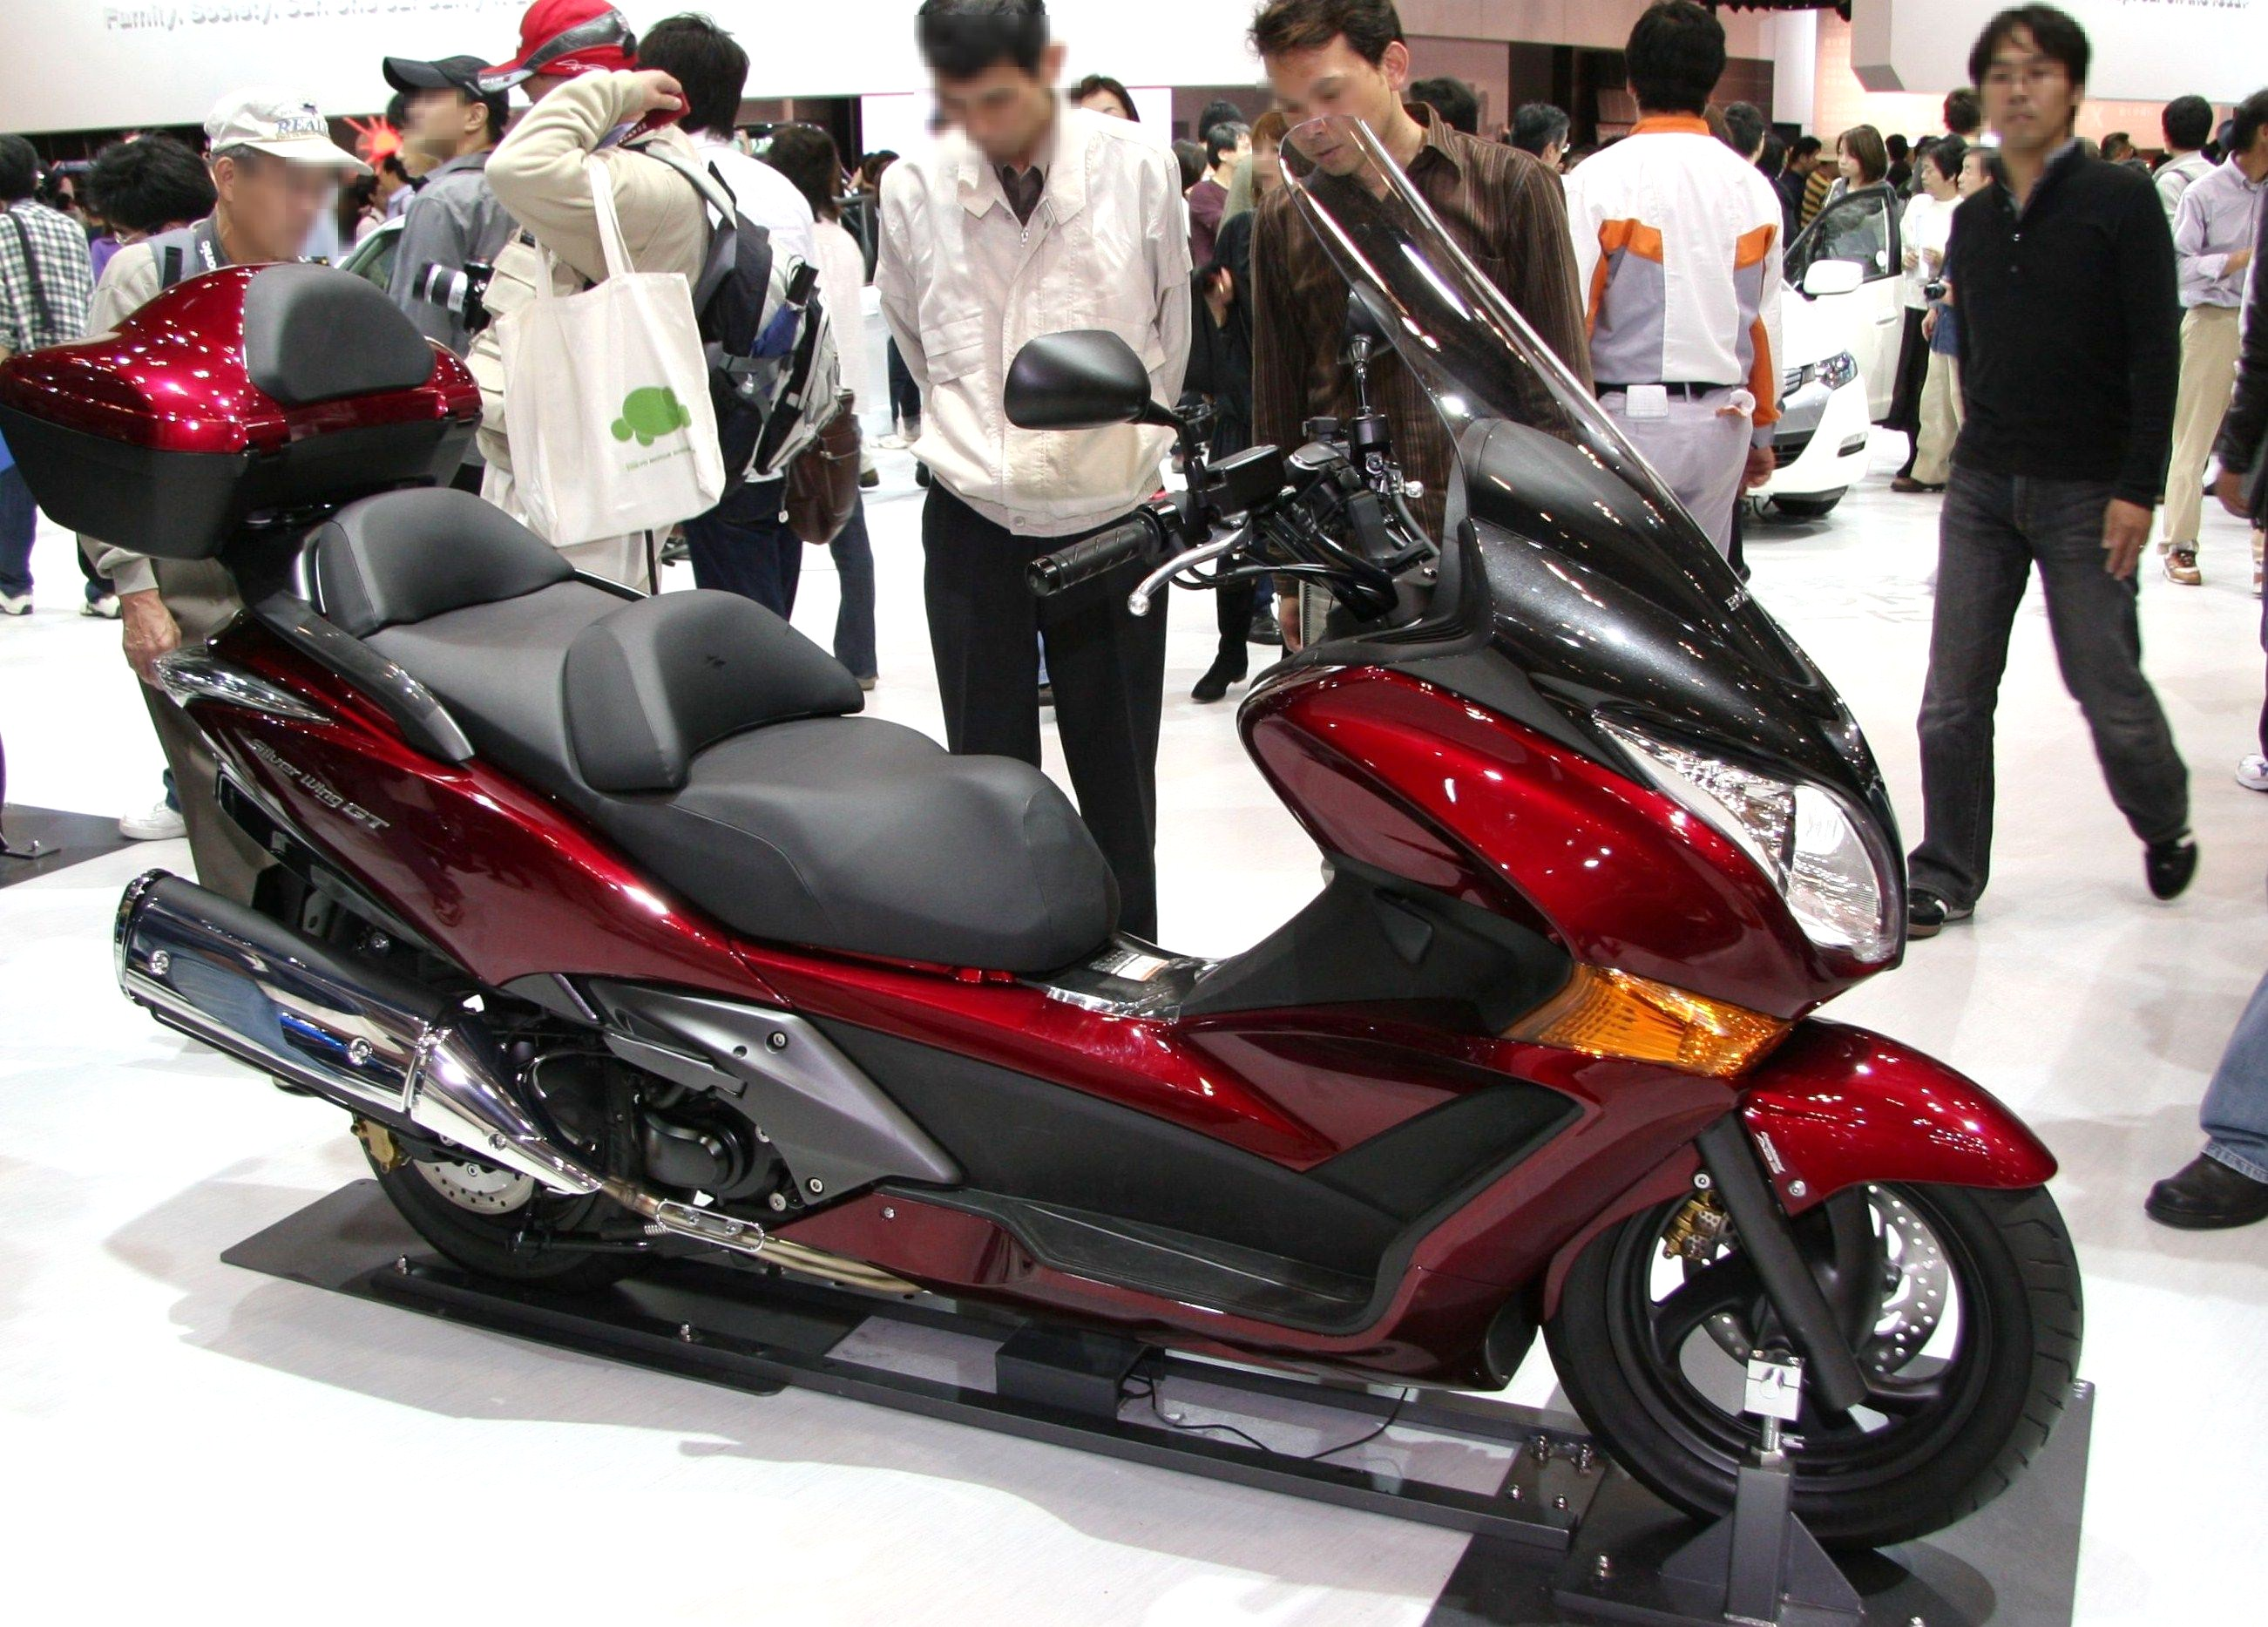 Honda Silver Wing 2007 images #83009